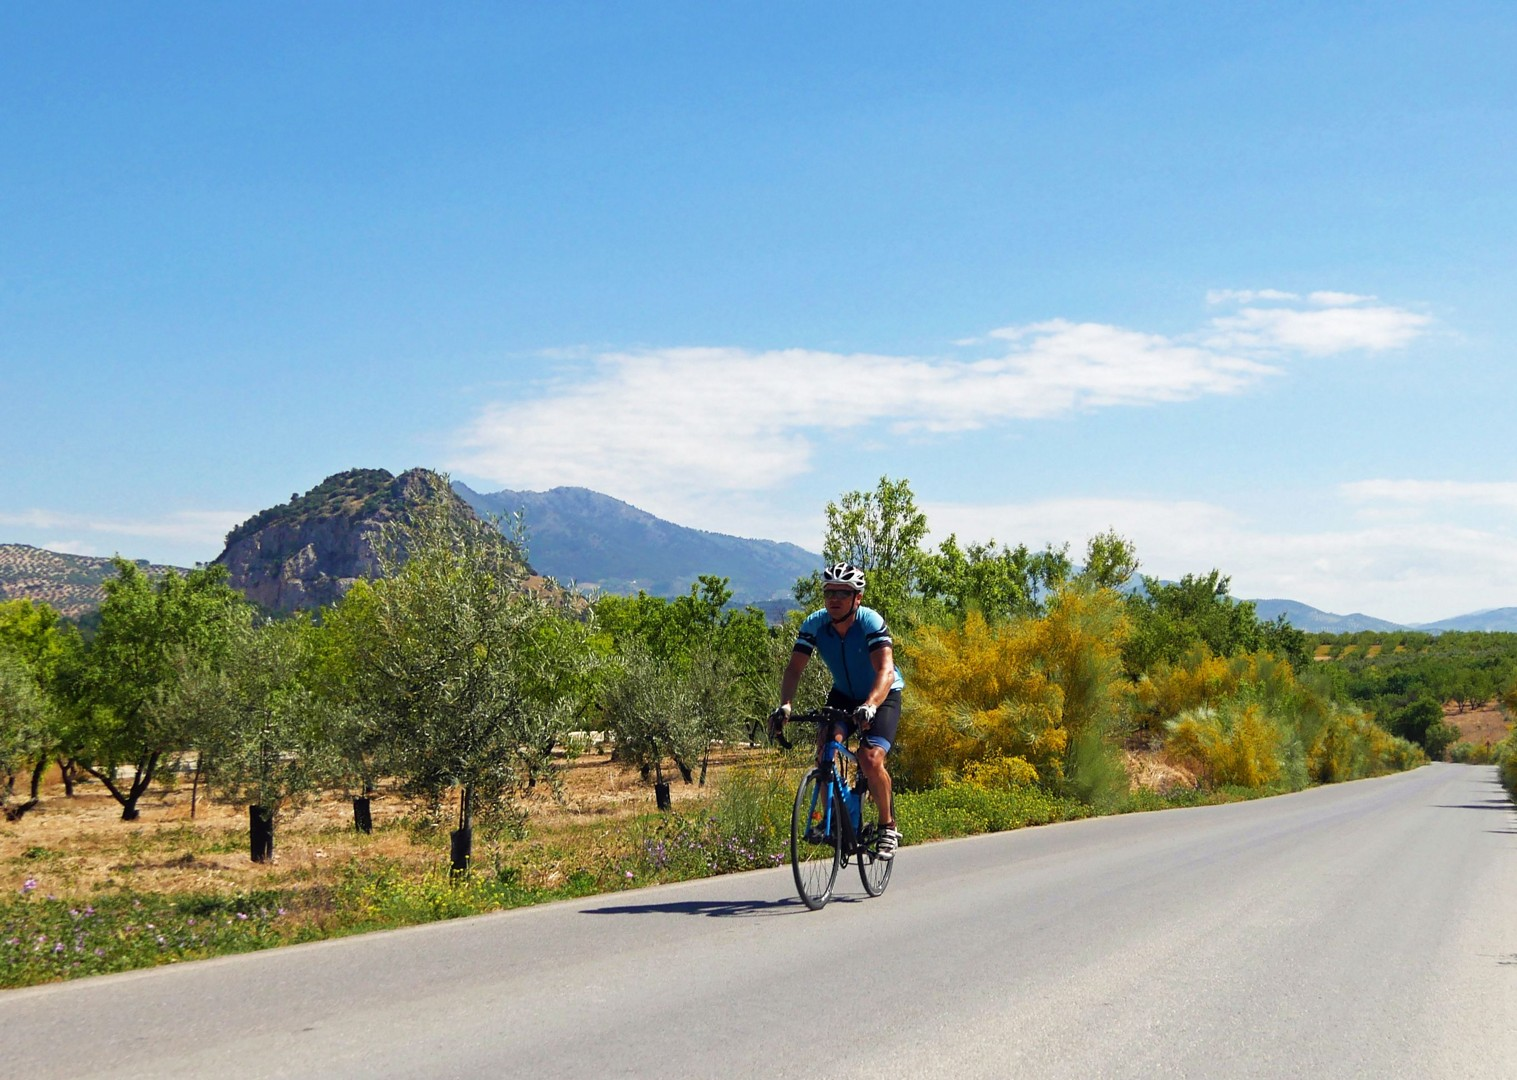 olive-groves-road-cycling-holiday-spain.jpg - Spain - Basque Country to Andalucia - North to South - 16 Day - Guided Road Cycling Holiday - Road Cycling